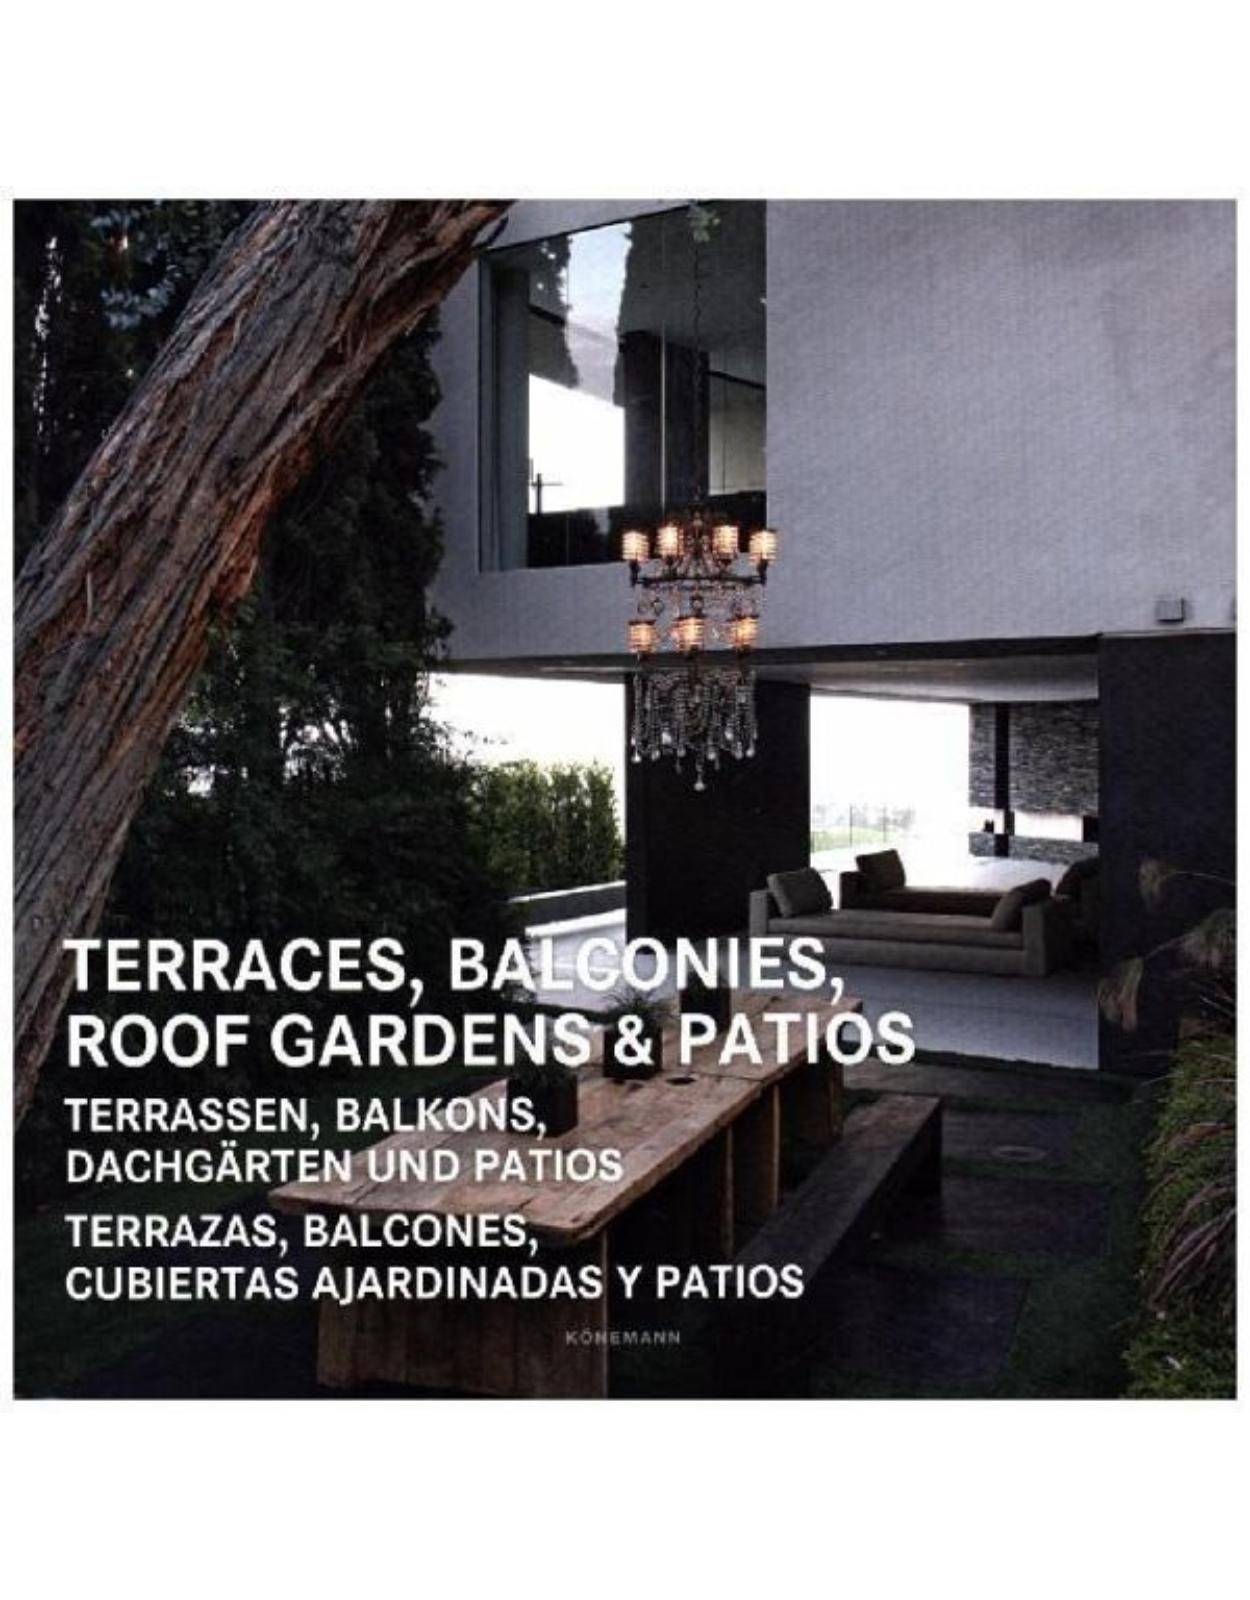 Terraces, balconies, roof gardens& patios